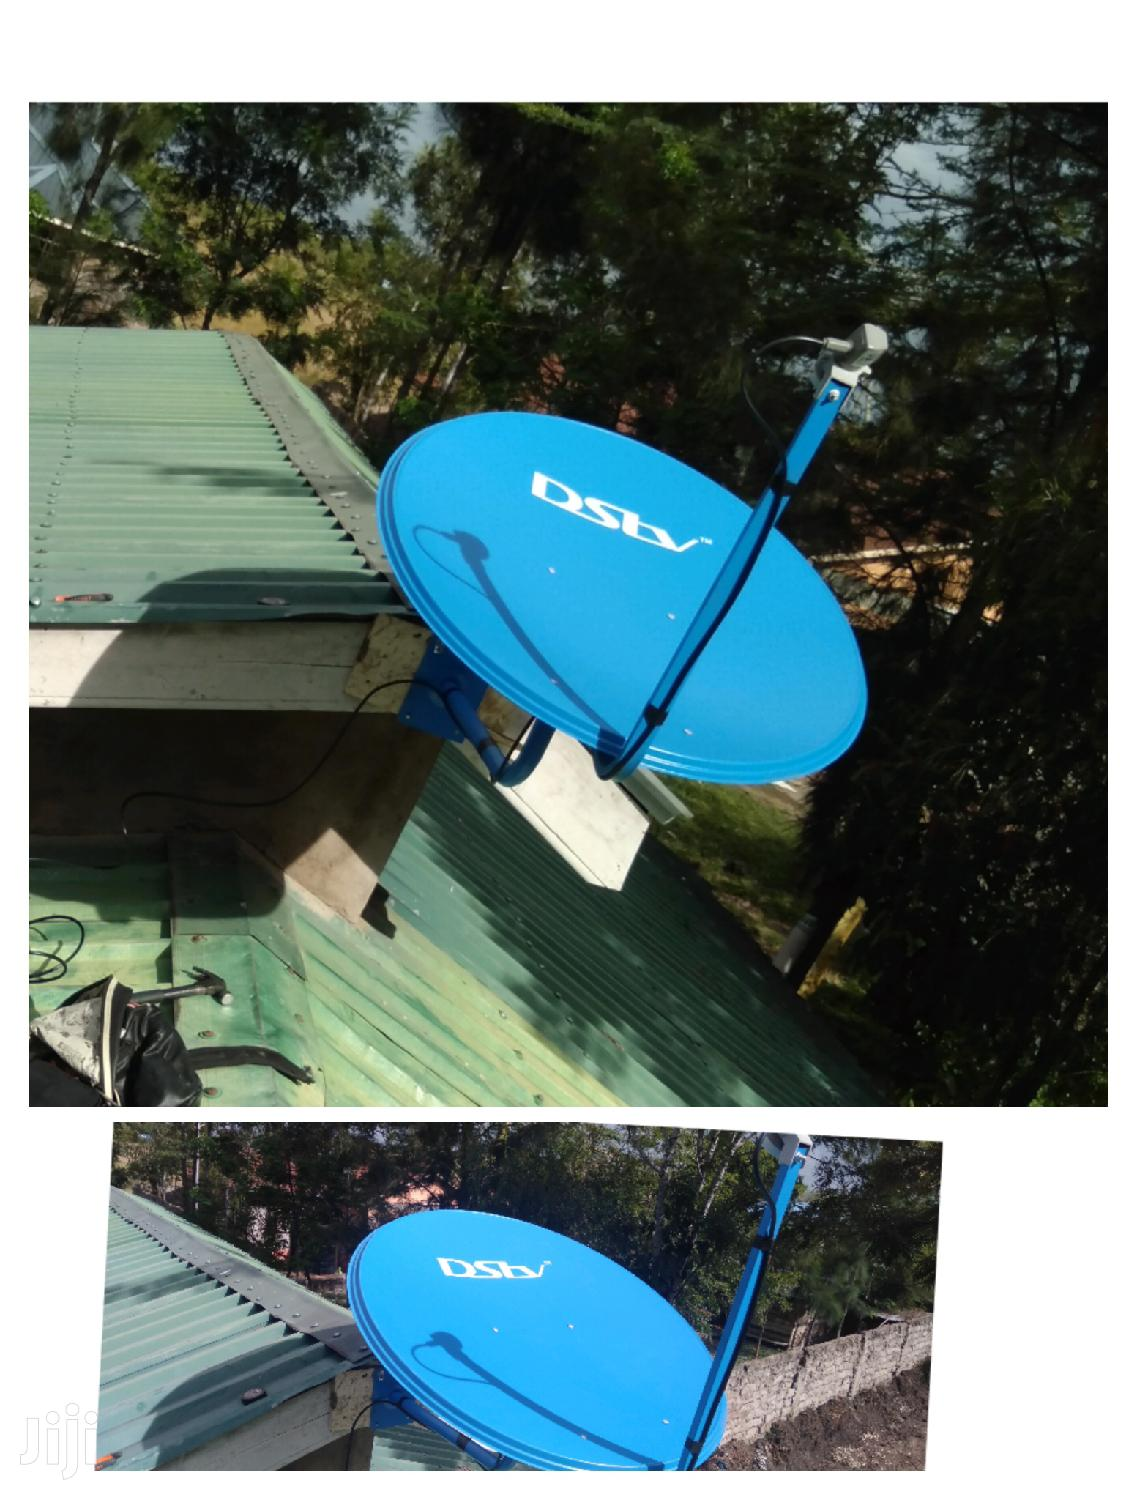 Dstv Installation Services And Dstv Signal Repair